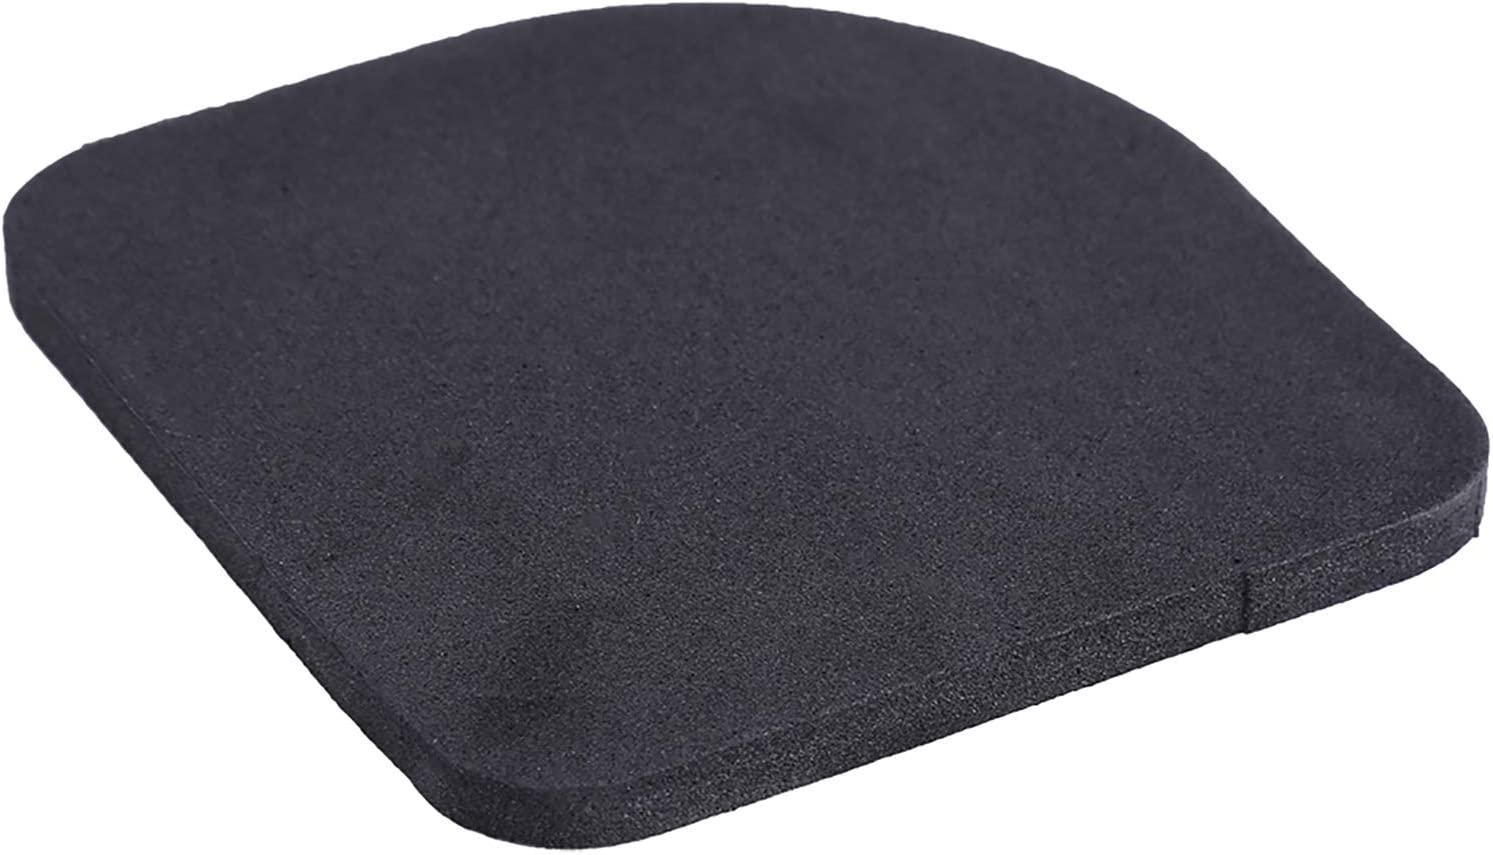 GOTOTOP 4Pcs Washing Machine Pad for Shaking Refrigerator EVA Black Anti-Vibration Pads Mat Home Appliance Scratch Floor Protector 2.75in